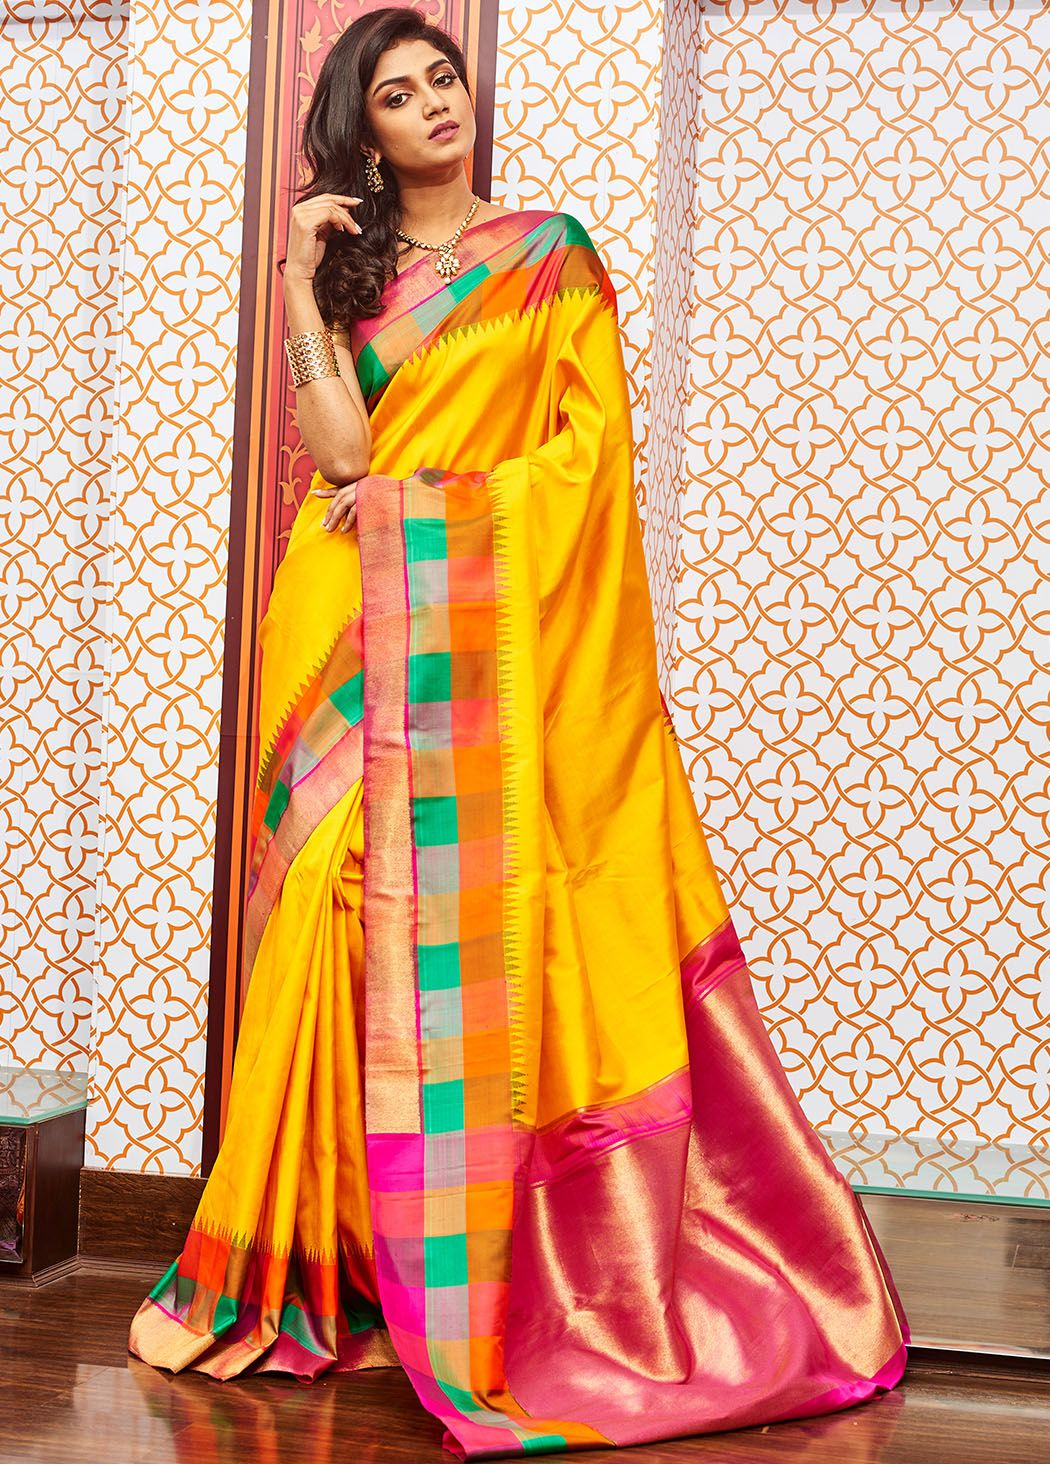 95a9a68be85 BUY SAREE ONLINE - YELLOW KANCHIPURAM SAREE WITH BLOUSE